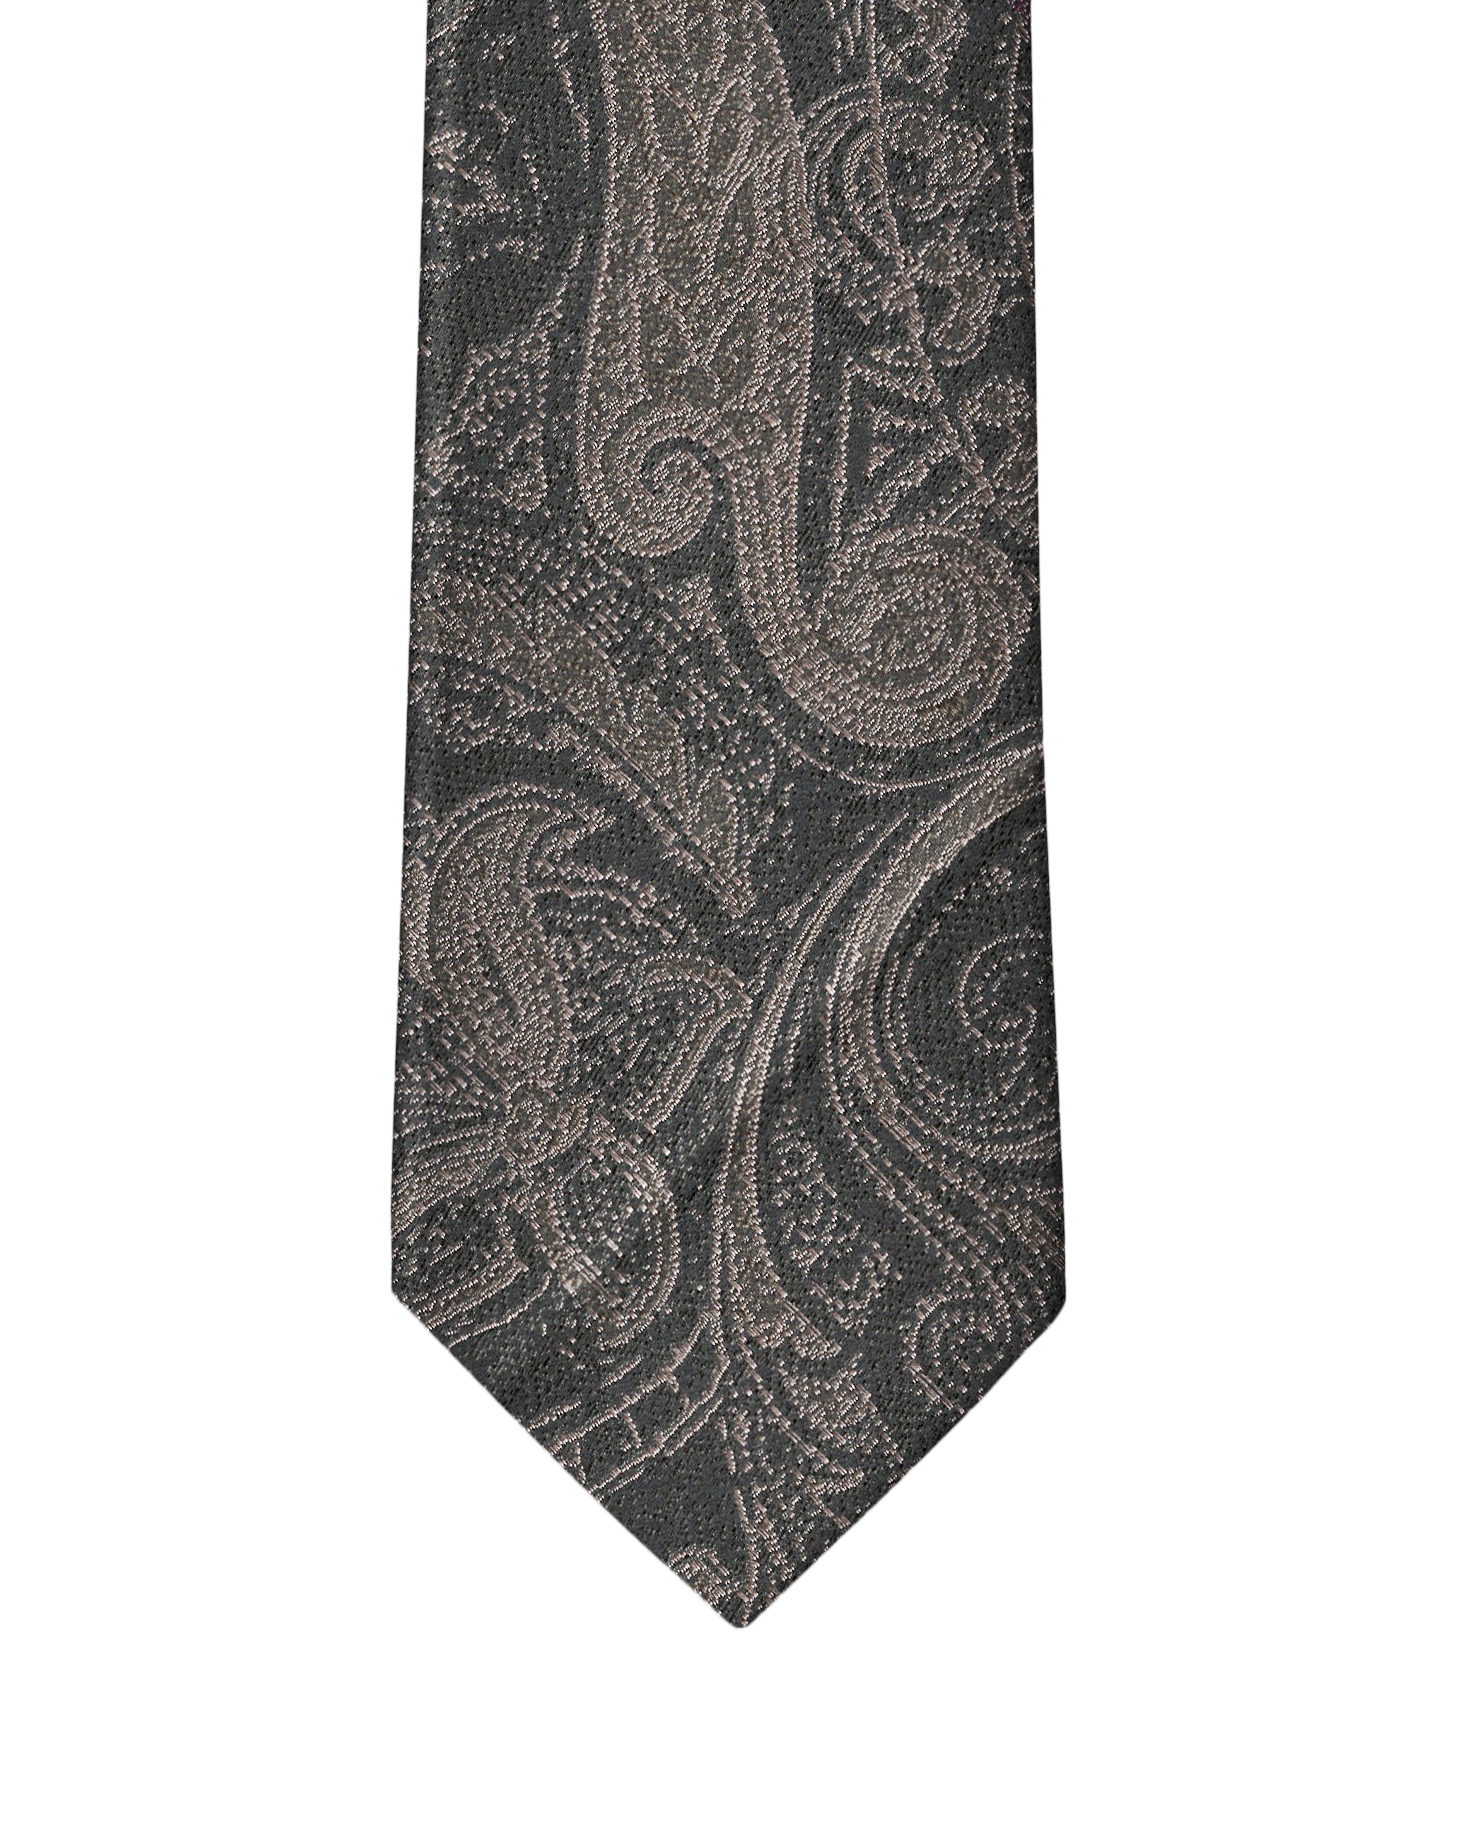 Black & Grey Persian Paisley Necktie